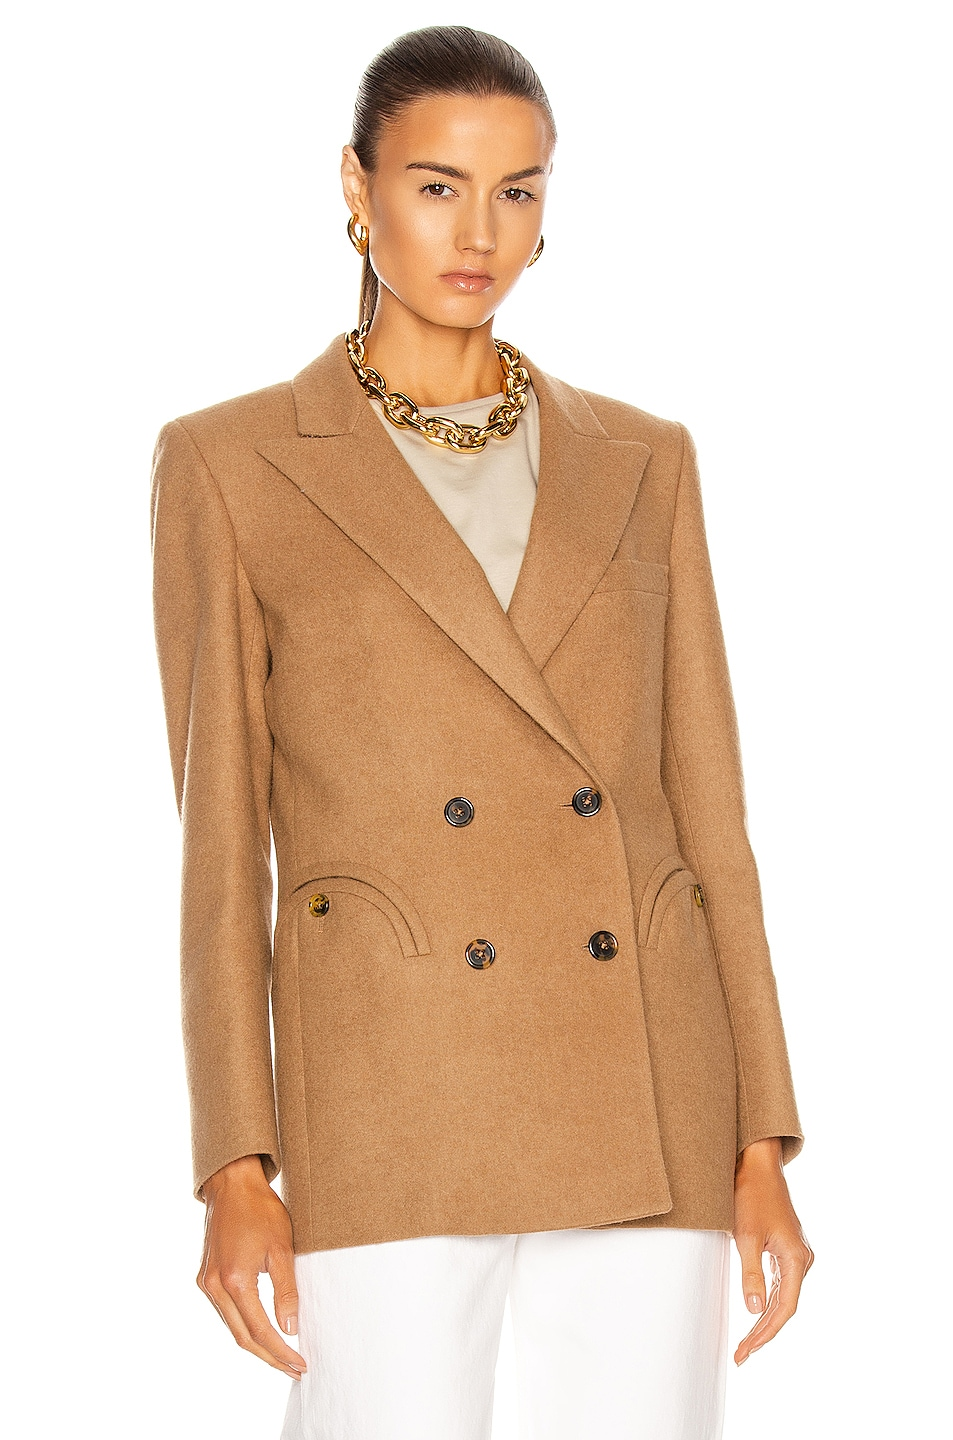 Image 2 of Blaze Milano Essential Cholita Everyday Blazer in Camel